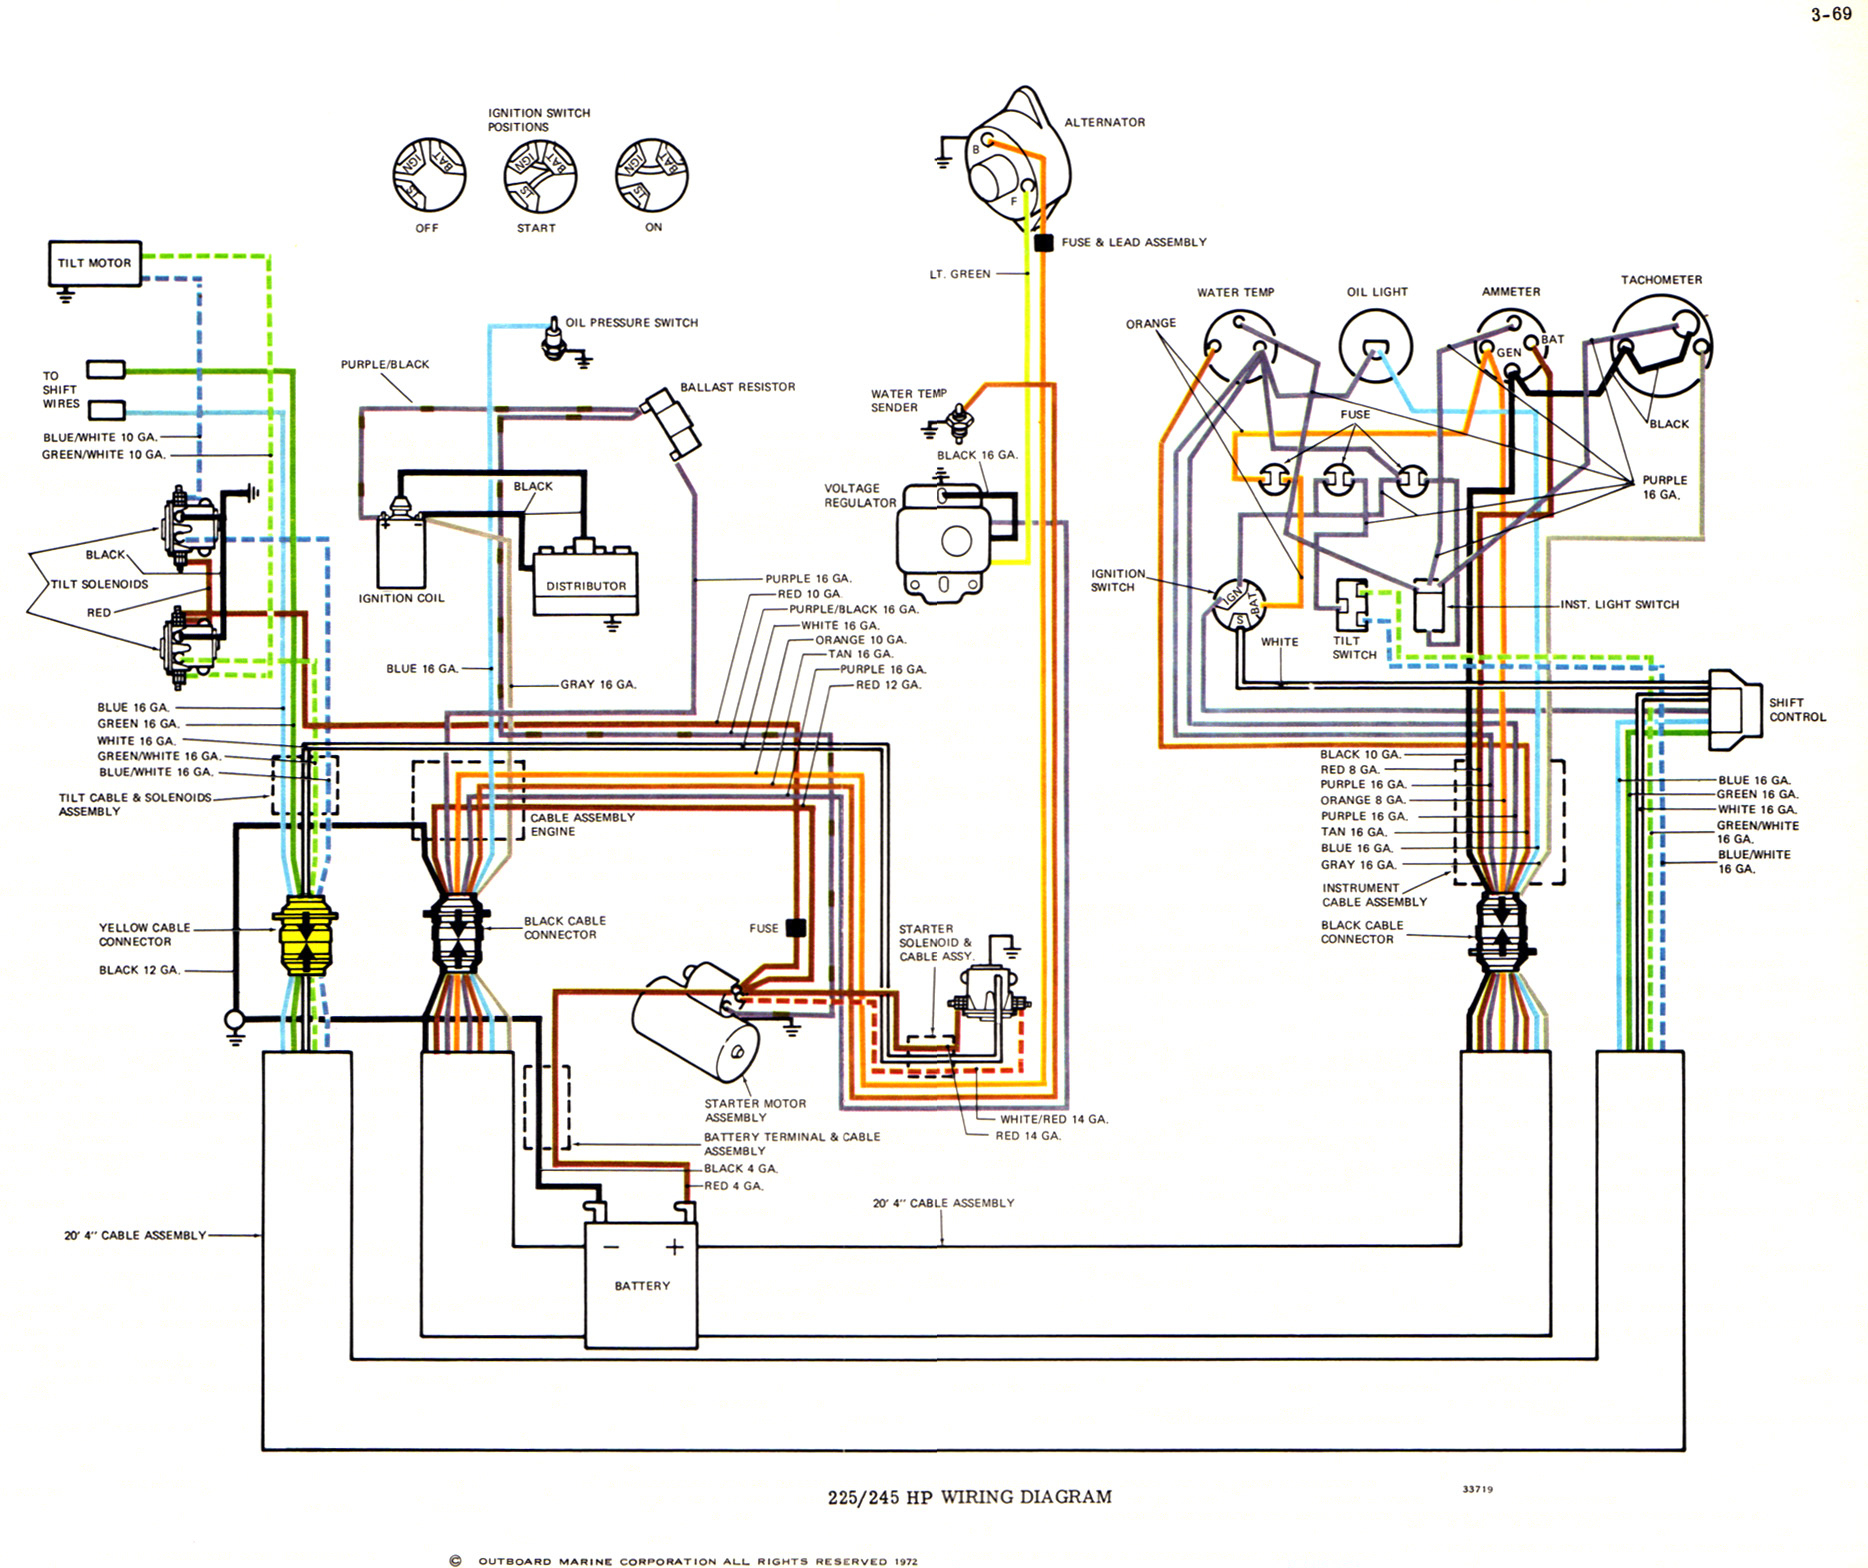 Mercruiser Tachometer Wiring | Schematic Diagram - Yamaha Outboard Wiring Harness Diagram